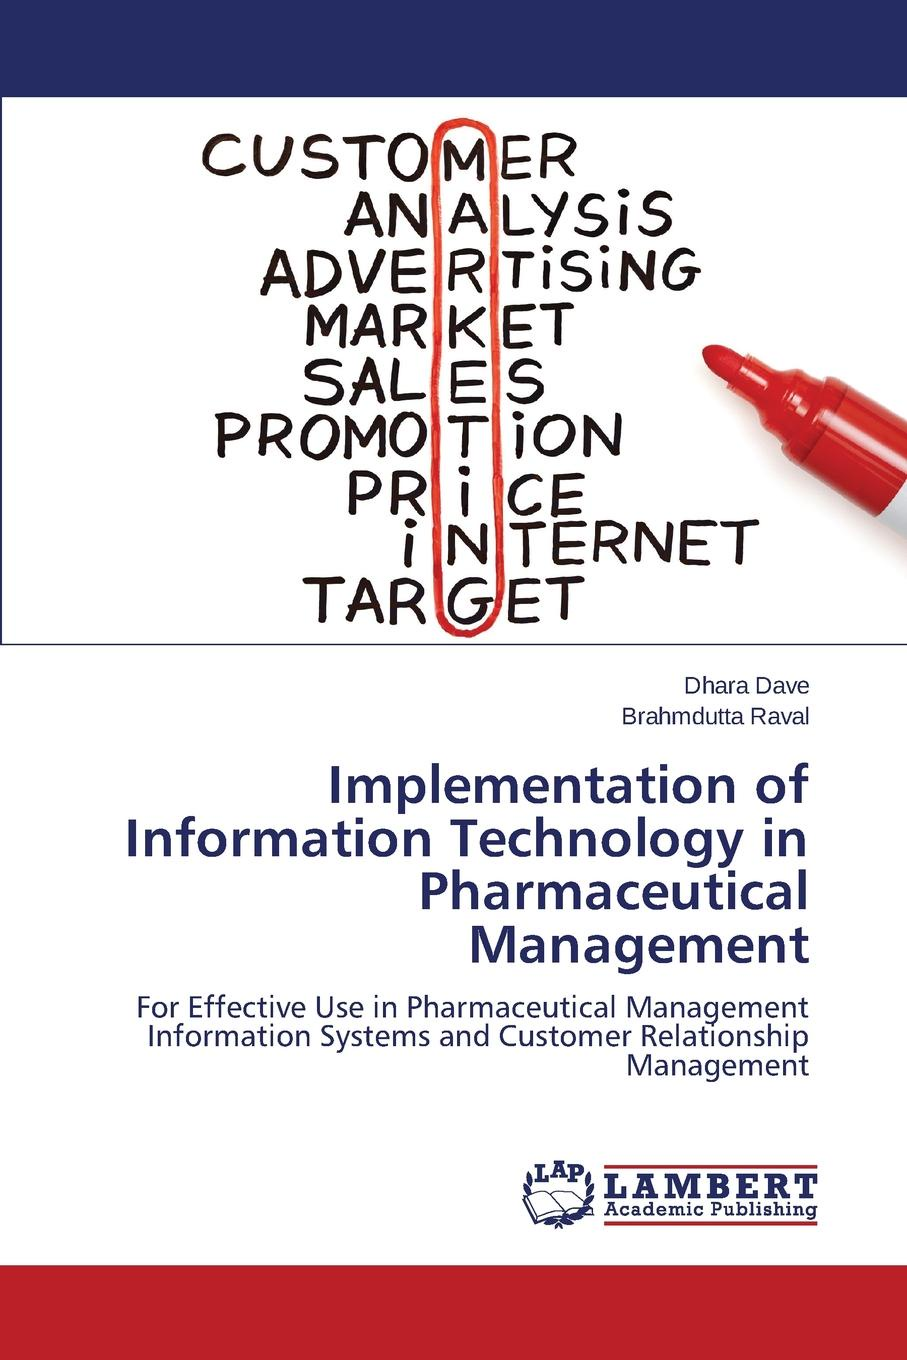 купить Dave Dhara, Raval Brahmdutta Implementation of Information Technology in Pharmaceutical Management по цене 8377 рублей